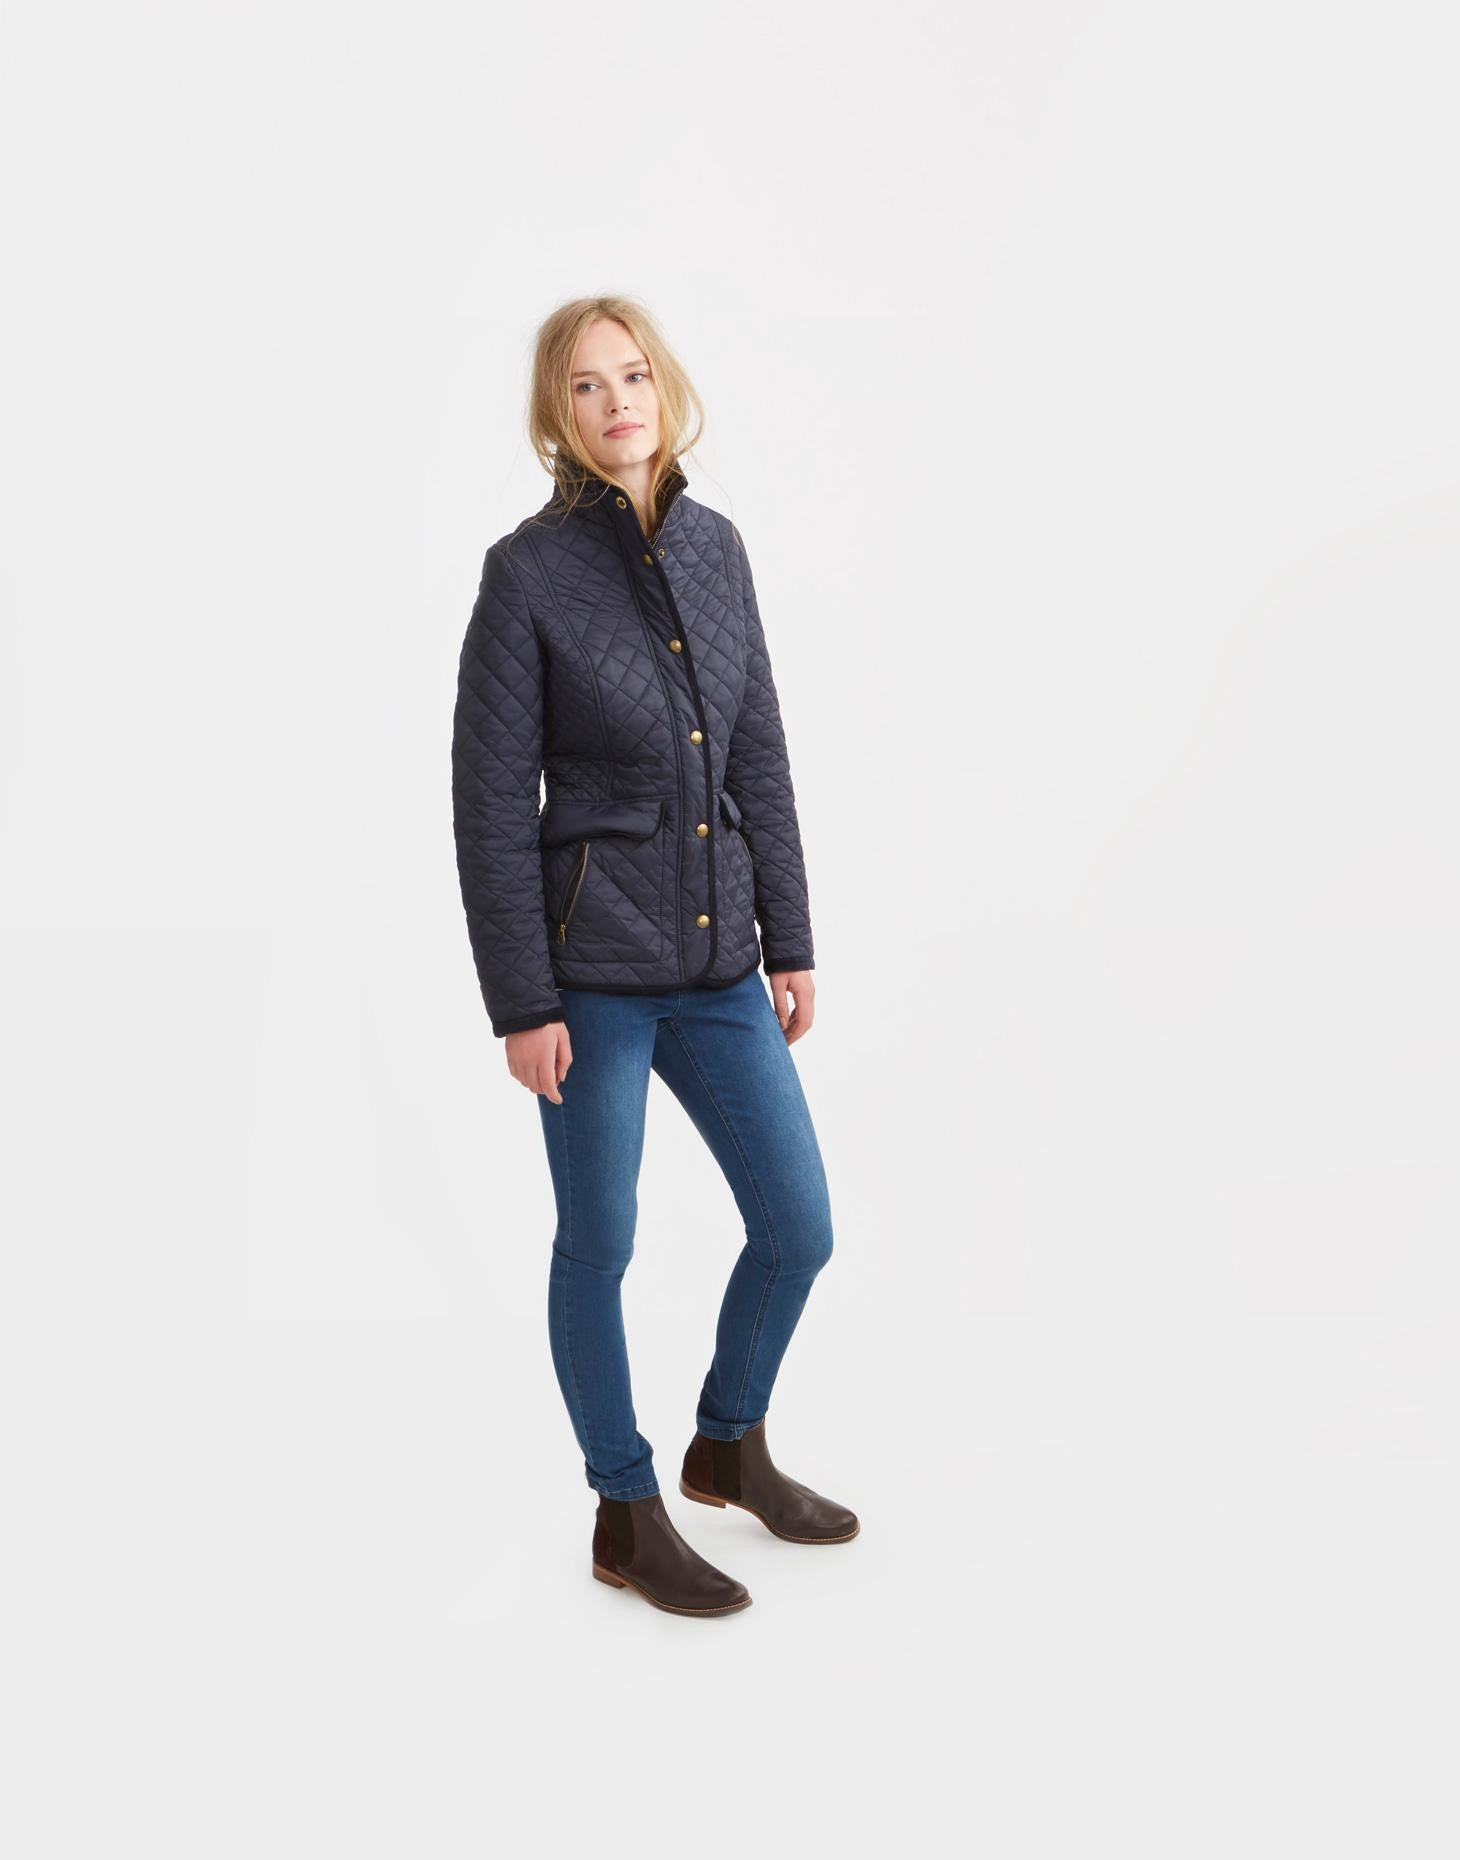 Joules Newdale Jacket - Navy by Joules from THE LUCKY KNOT - 2